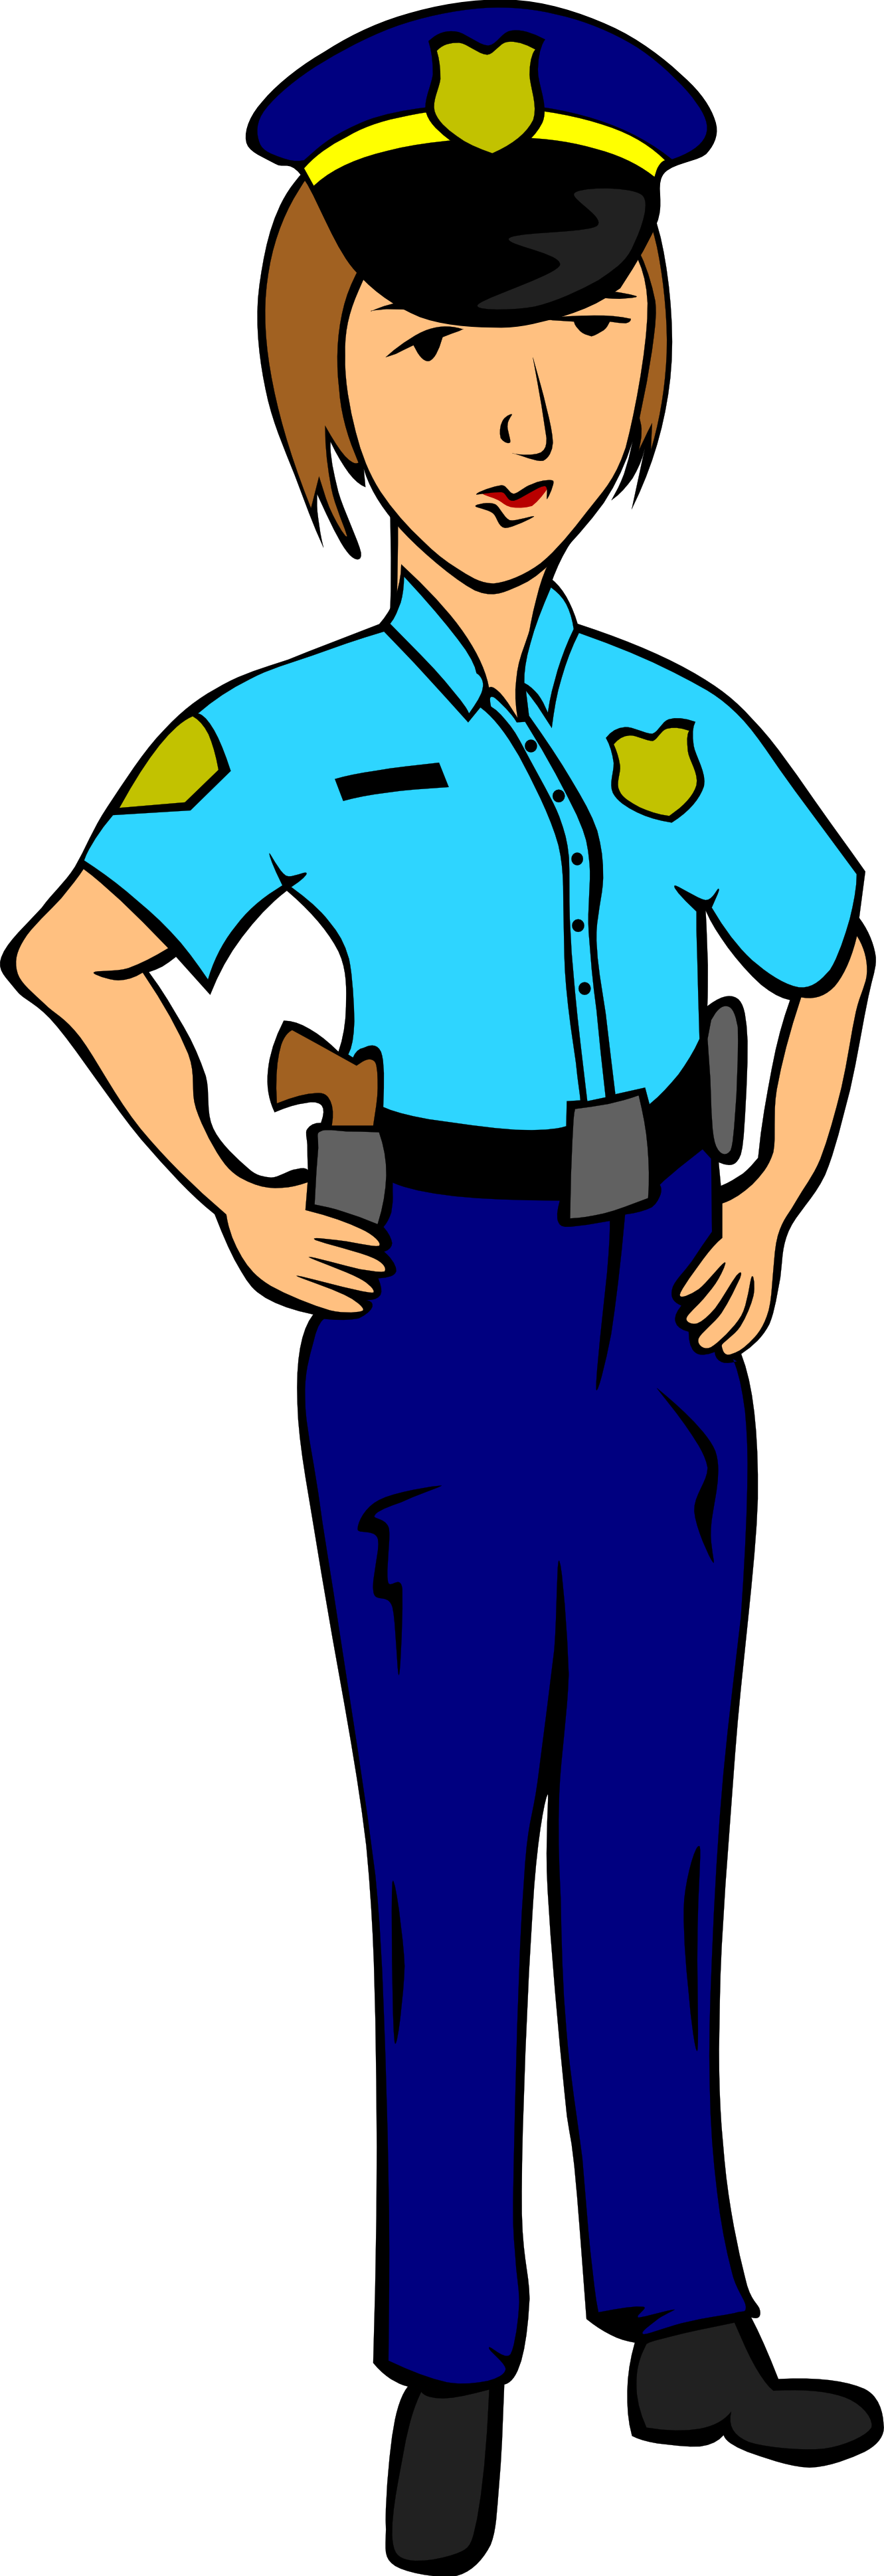 Police Officer Clipart | Clipart library - Free Clipart Images - Policeman PNG HD Free